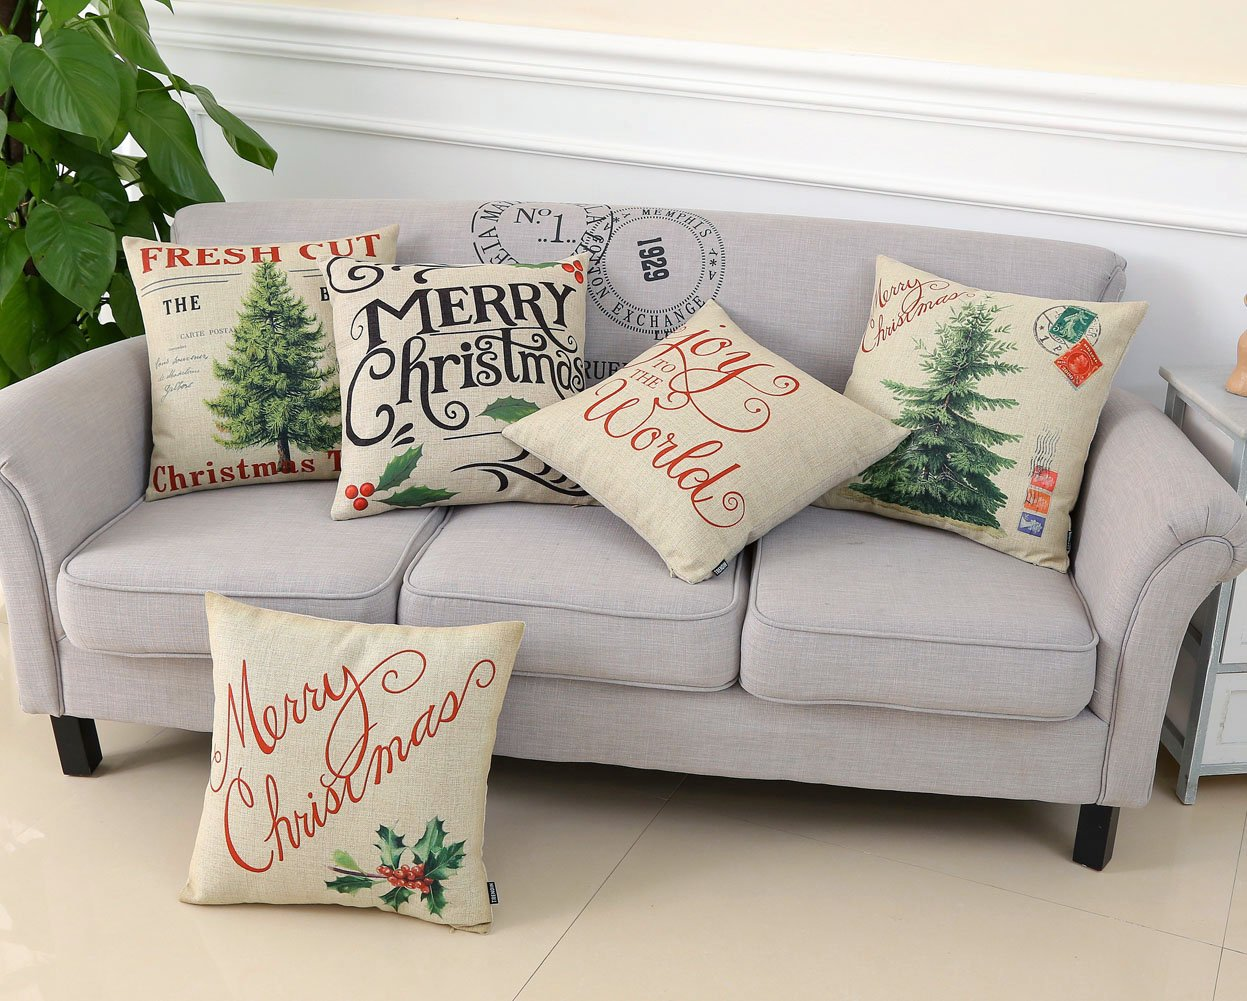 TRENDIN Merry Christmas Throw Pillow Cover Gifts Joy to the World Xmas Home Decor Design Cotton Linen 18 x 18 Cushion Cover for Sofa